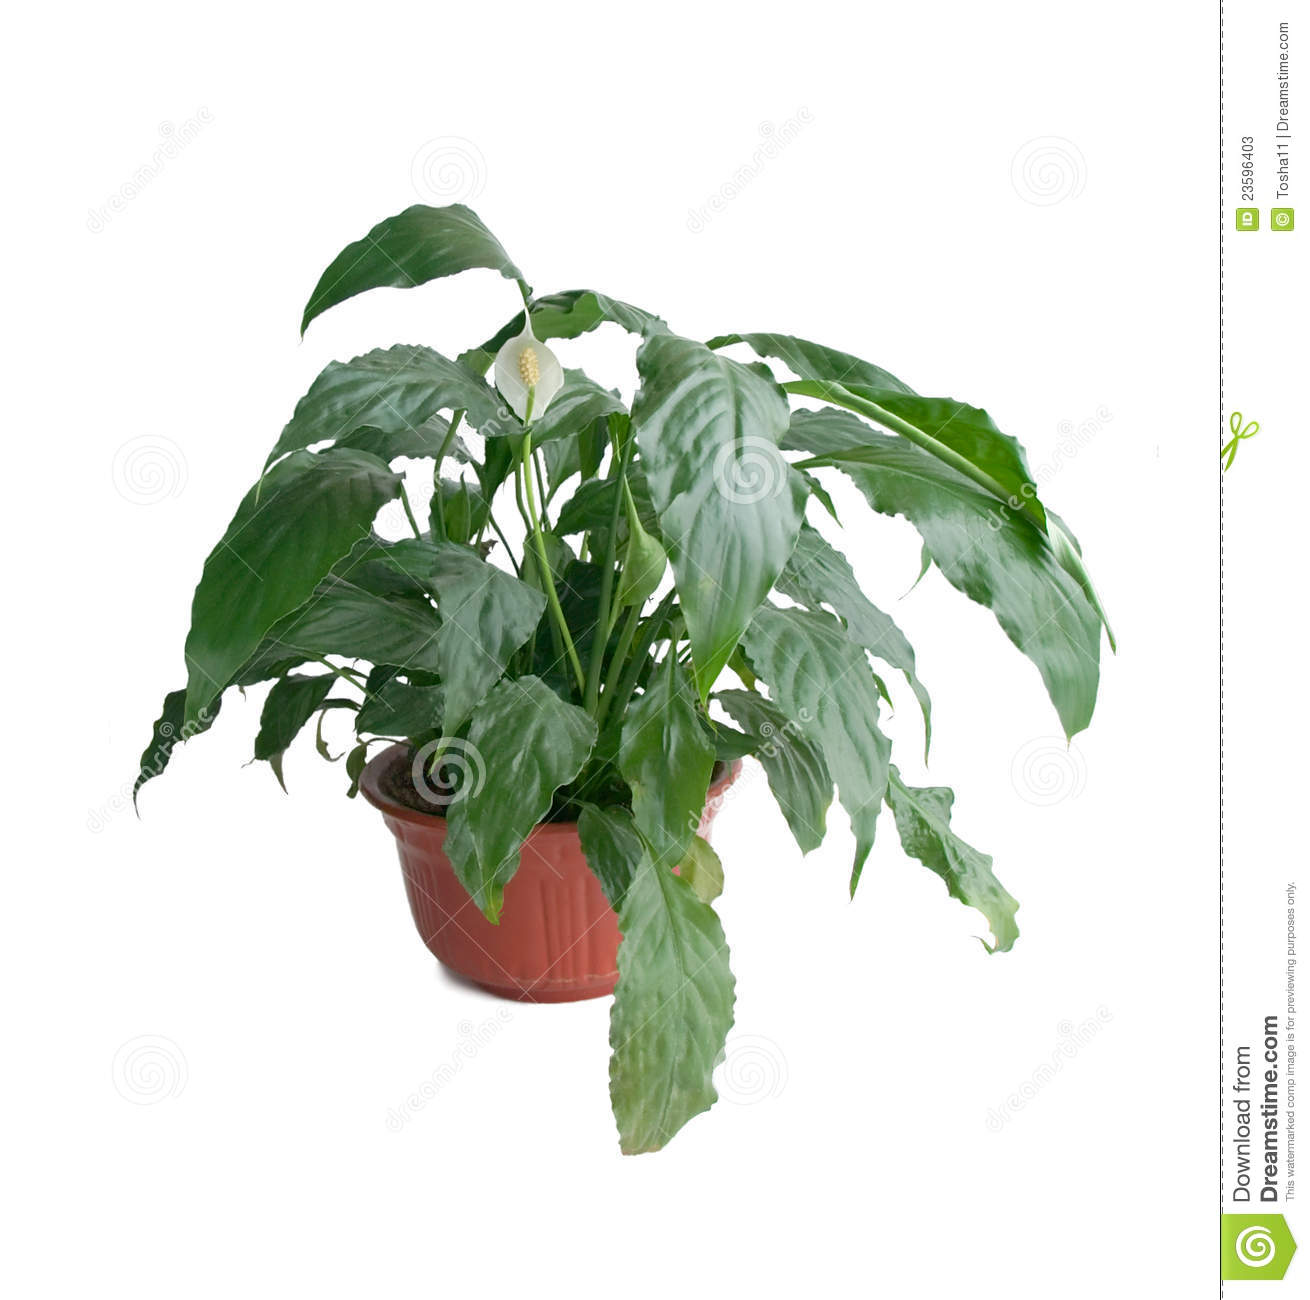 Spathiphyllum Wallisii Spathiphyllum Wallisii Stock Image Image Of Blooming 23596403